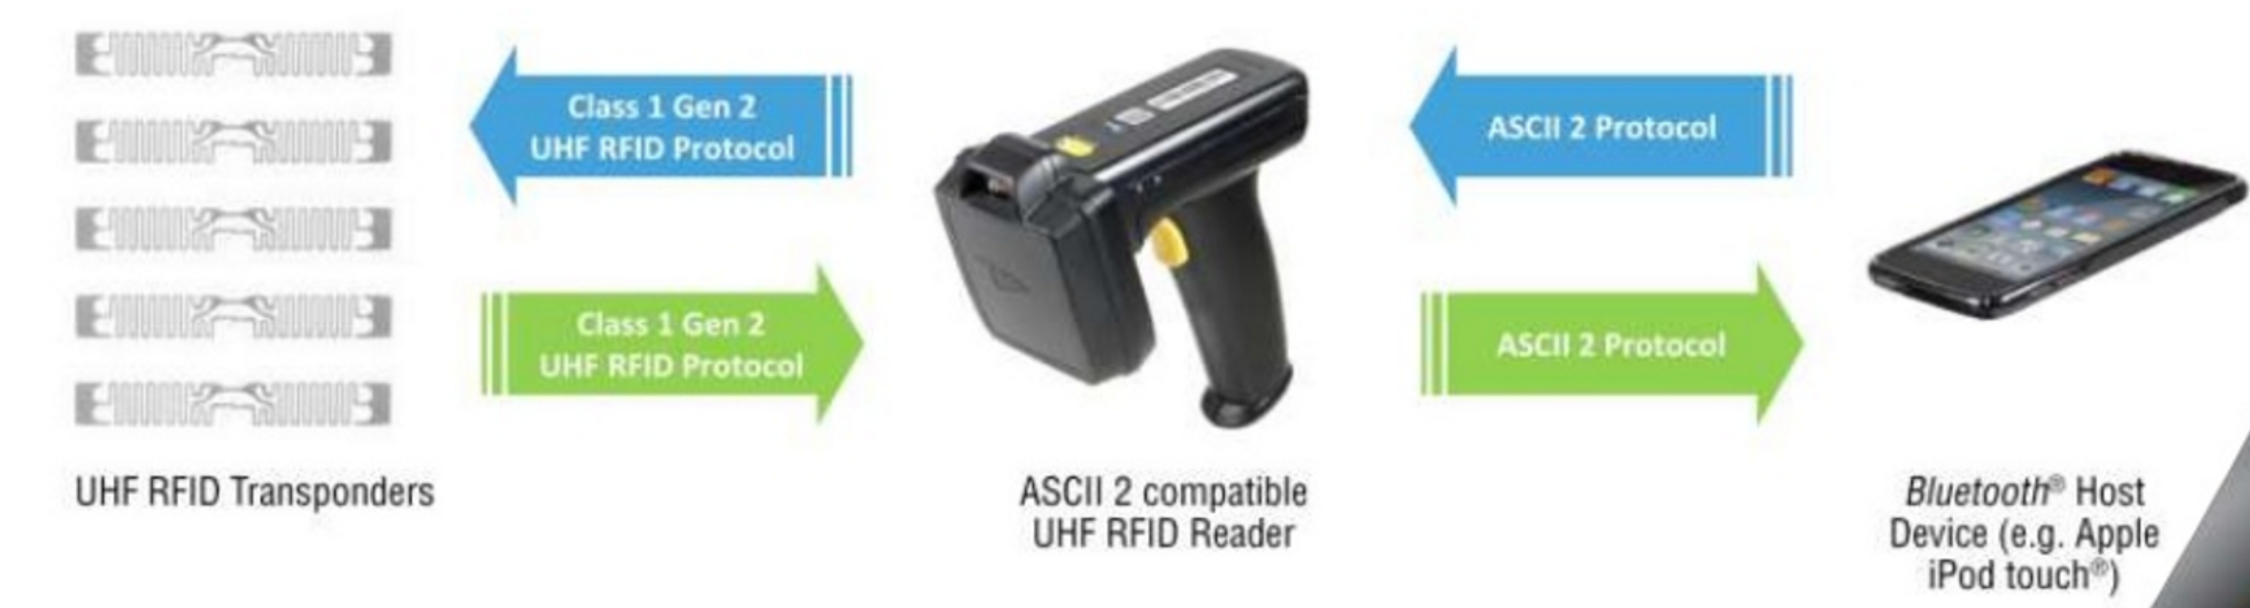 iOS RFID Solutions - AB&R® (American Barcode and RFID)